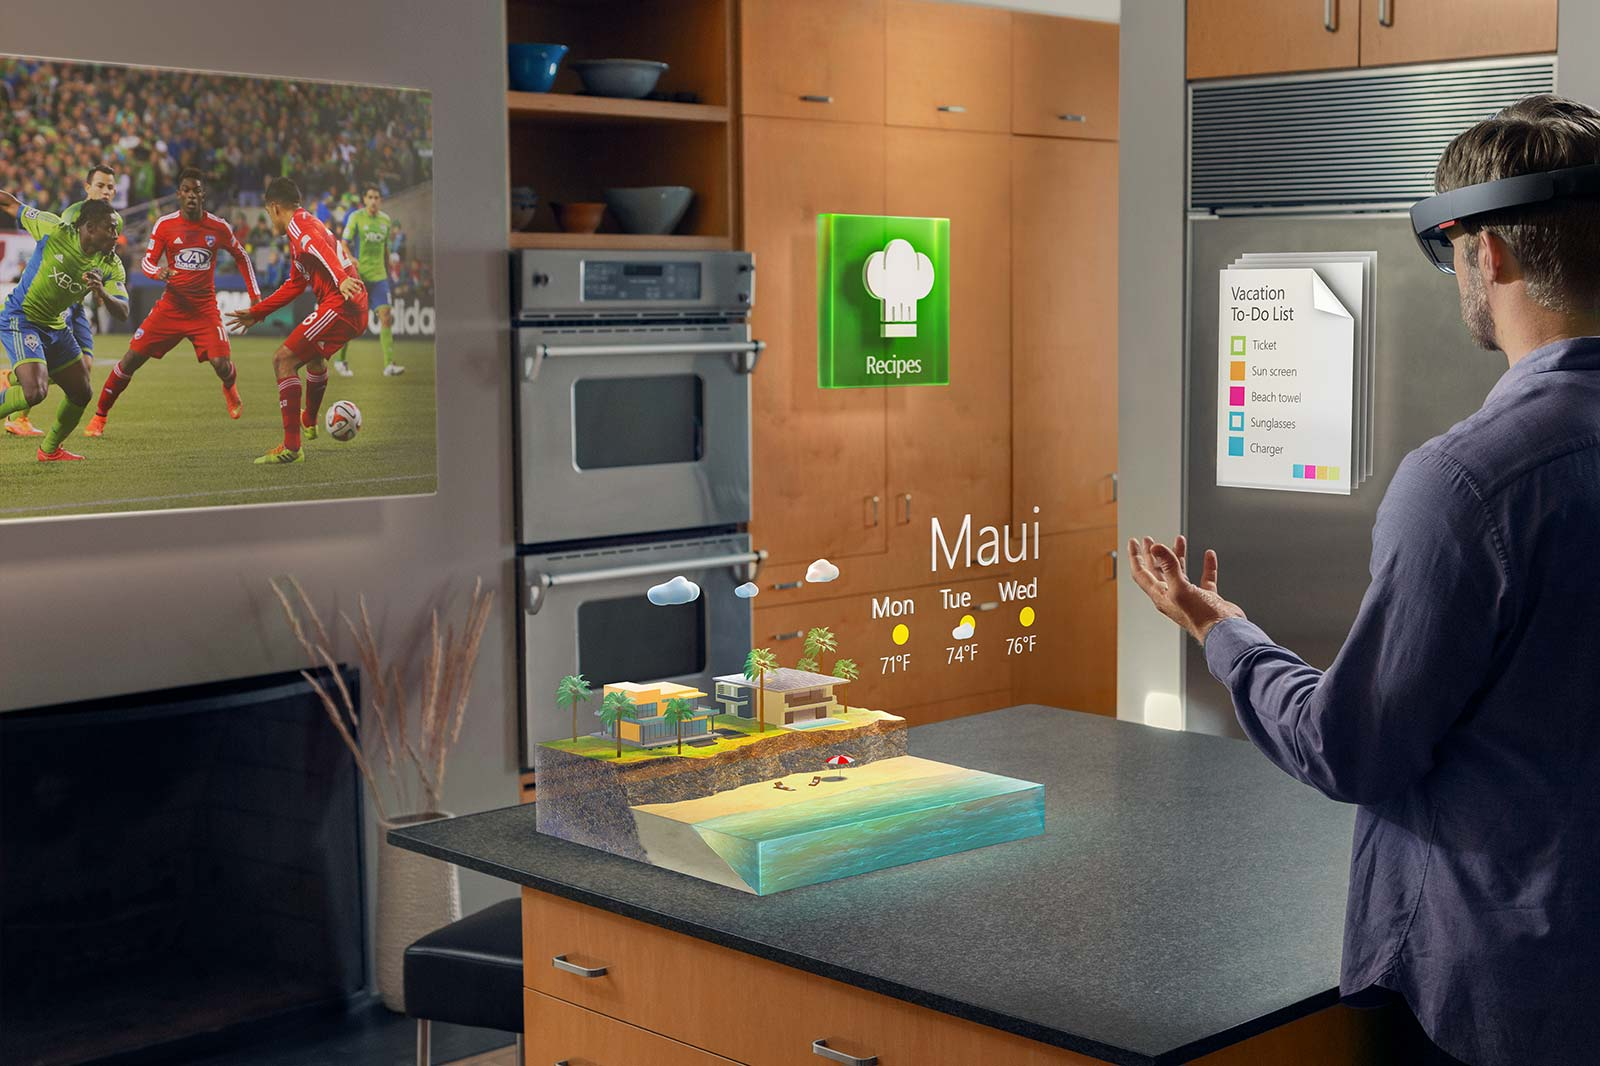 Smart Home Steuerung Smart Home Steuern Mit Der Hololens So Geht S Windowsunited